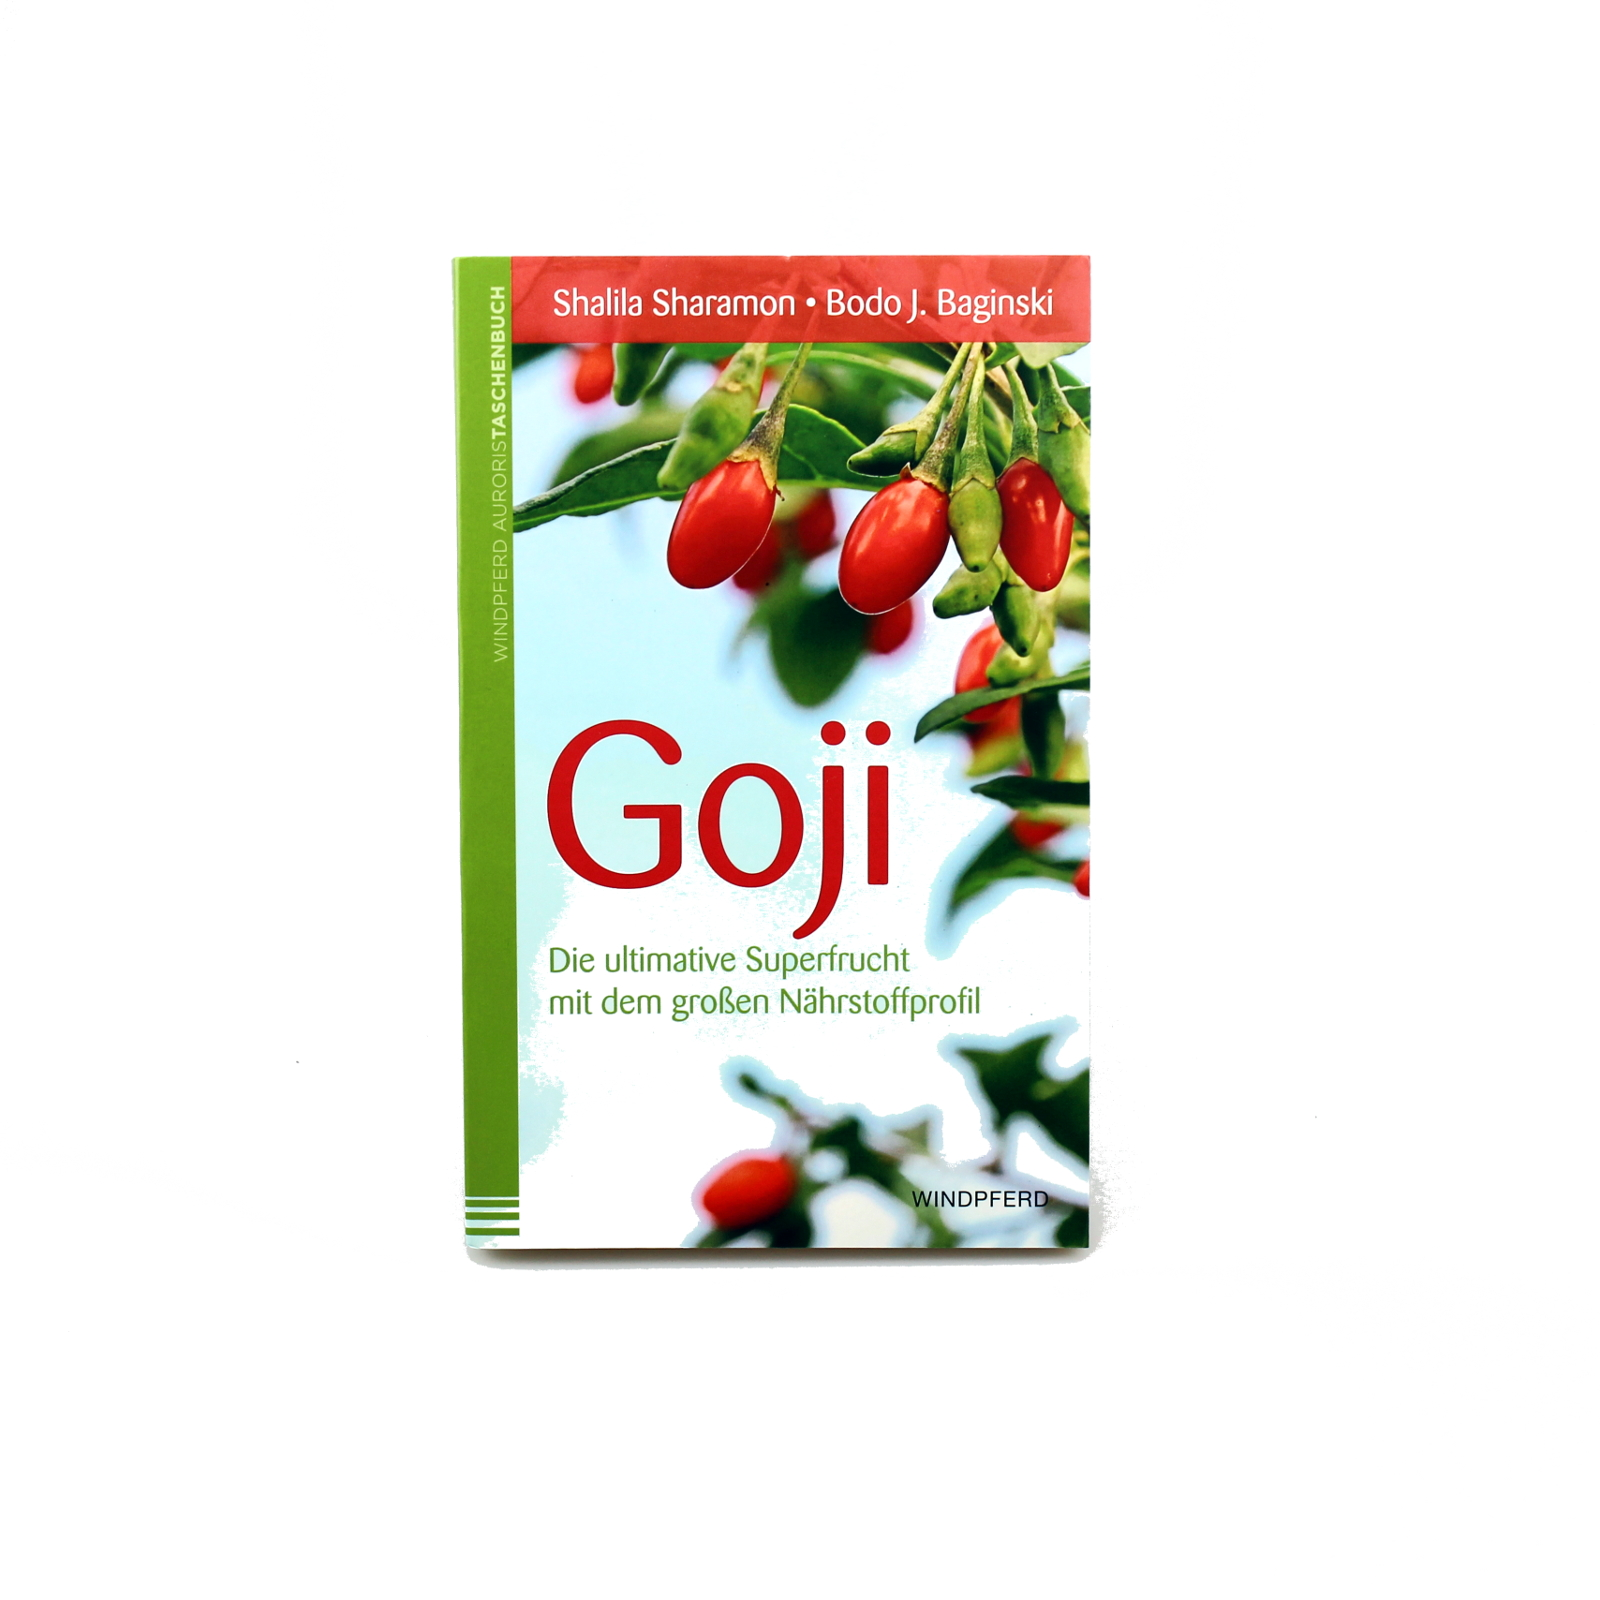 Goji - Die ultimative Superfrucht - Buch